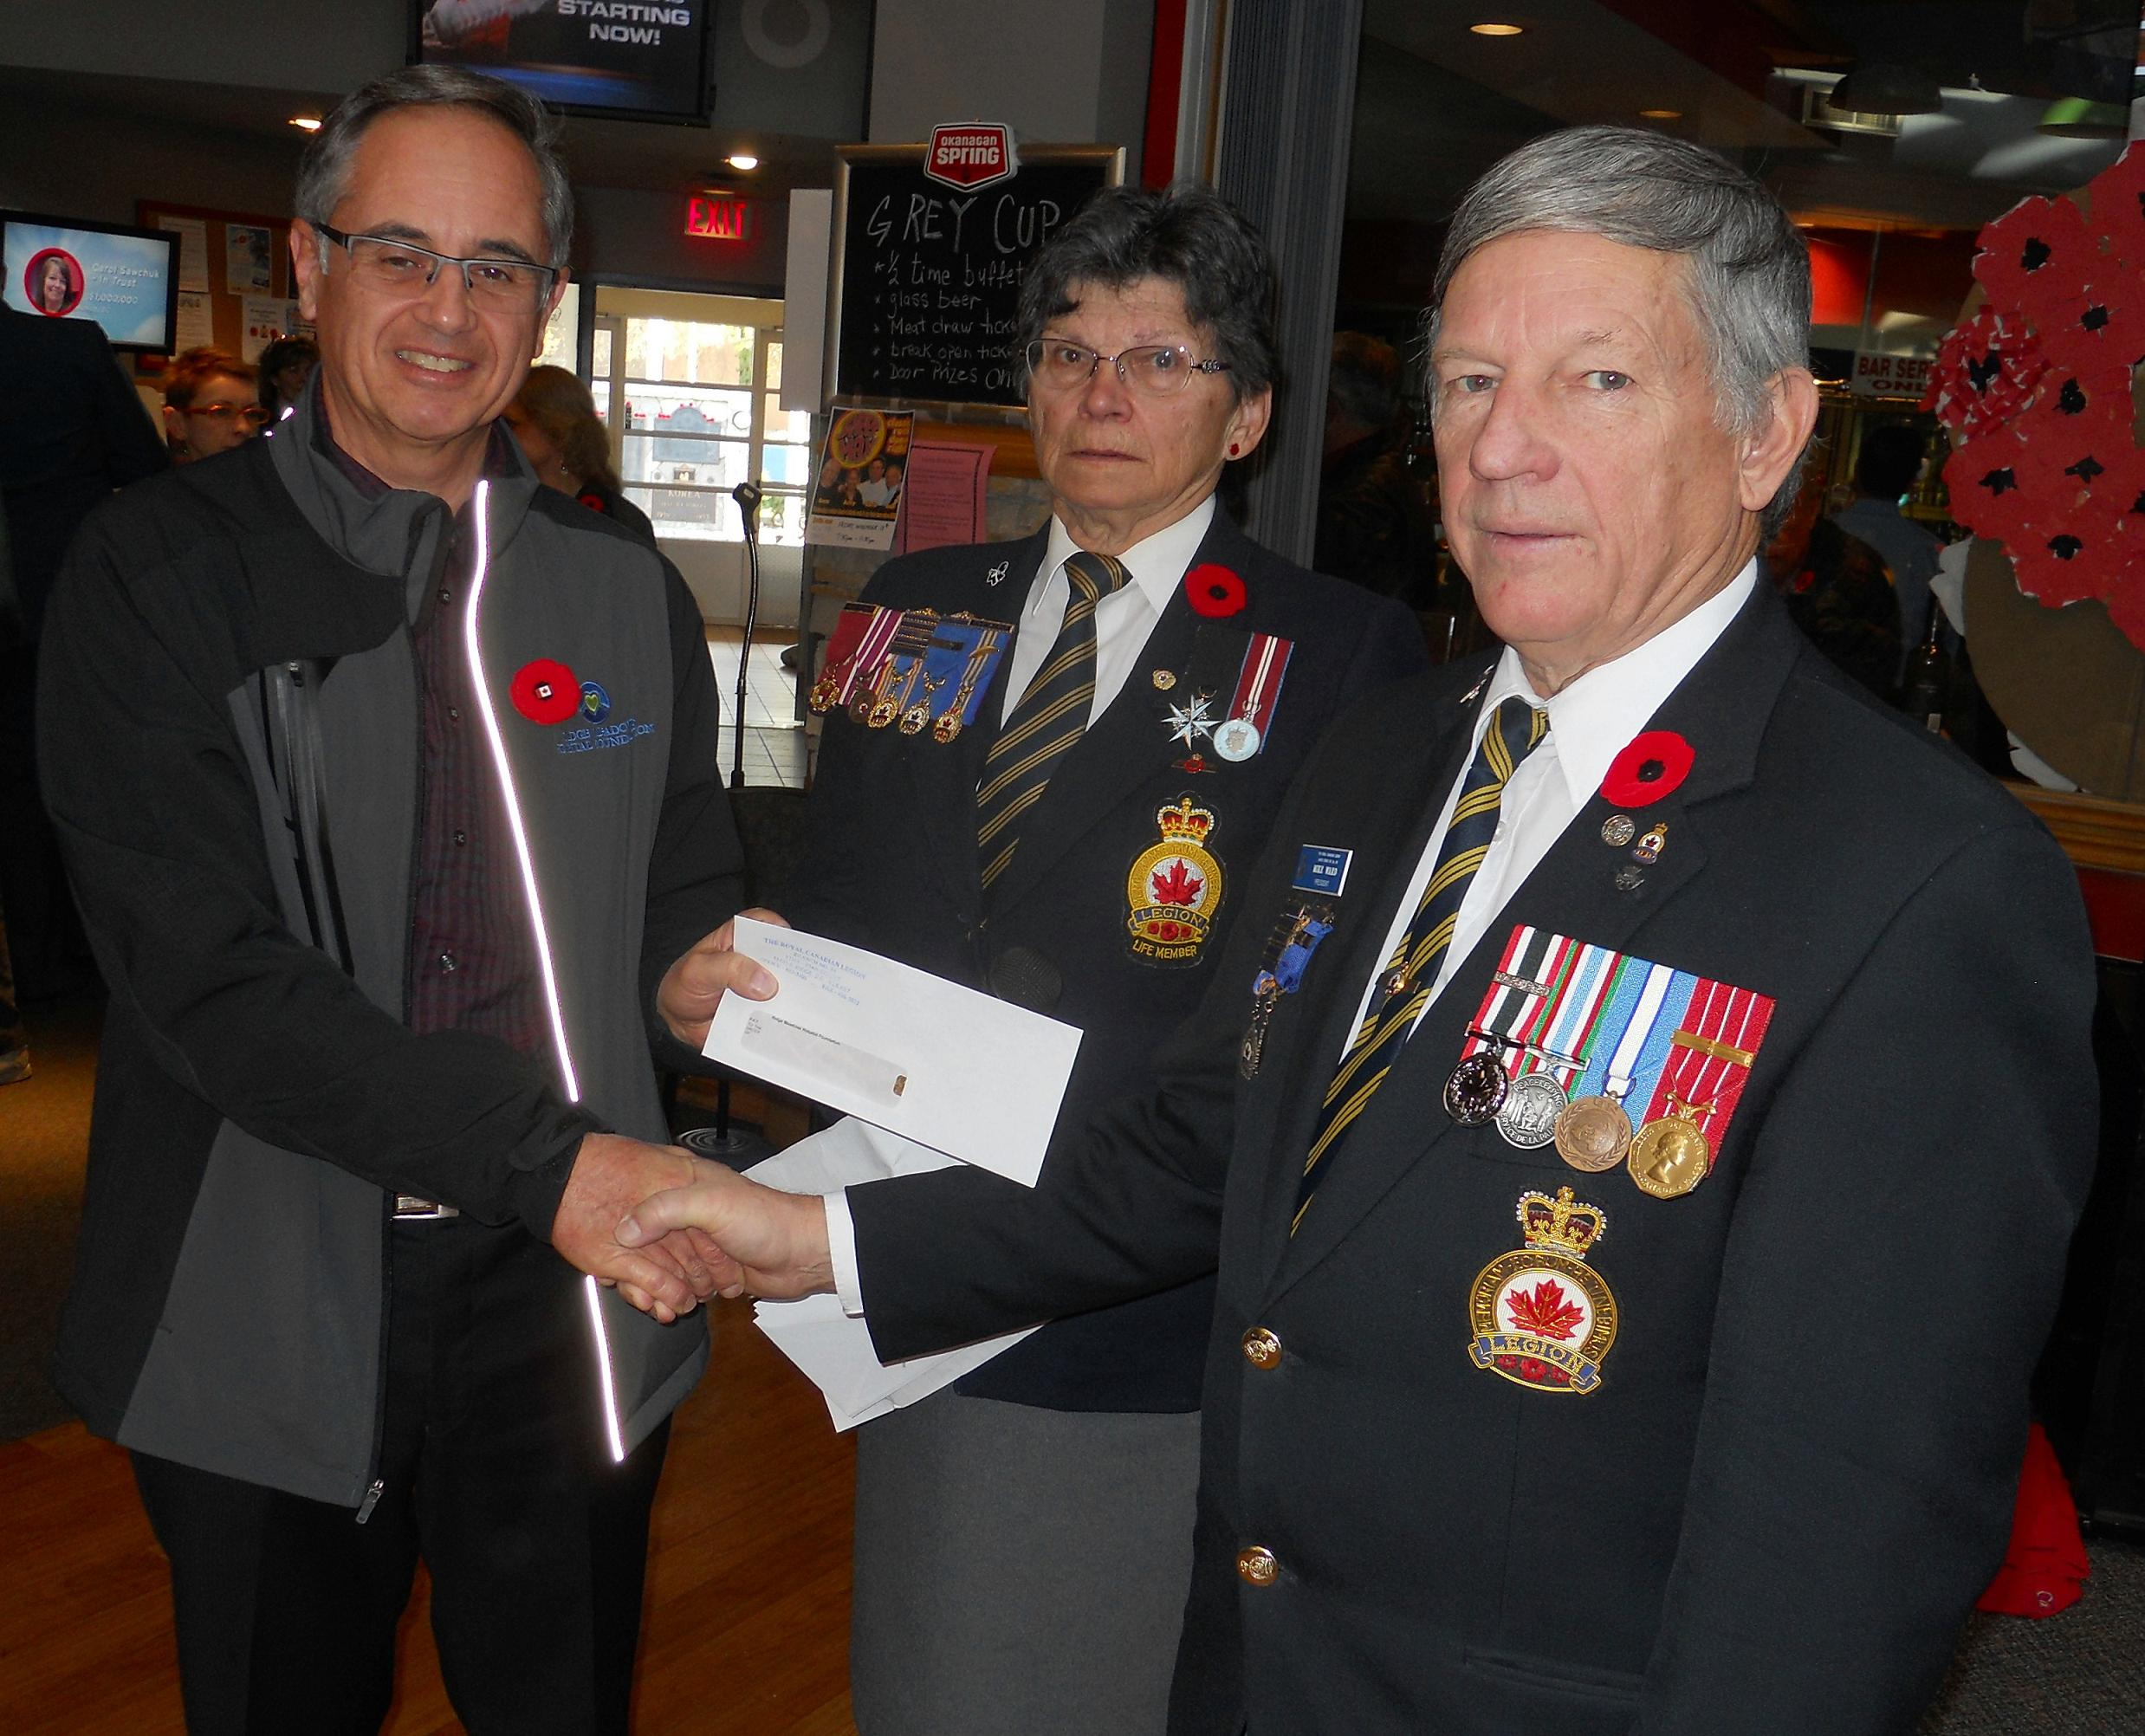 Branch President Mike Ward presents a cheque for $20,000.00 to Ridge Meadows Hospital Foundation board member Art Van Pelt at the Remembrance Day ceremonies.